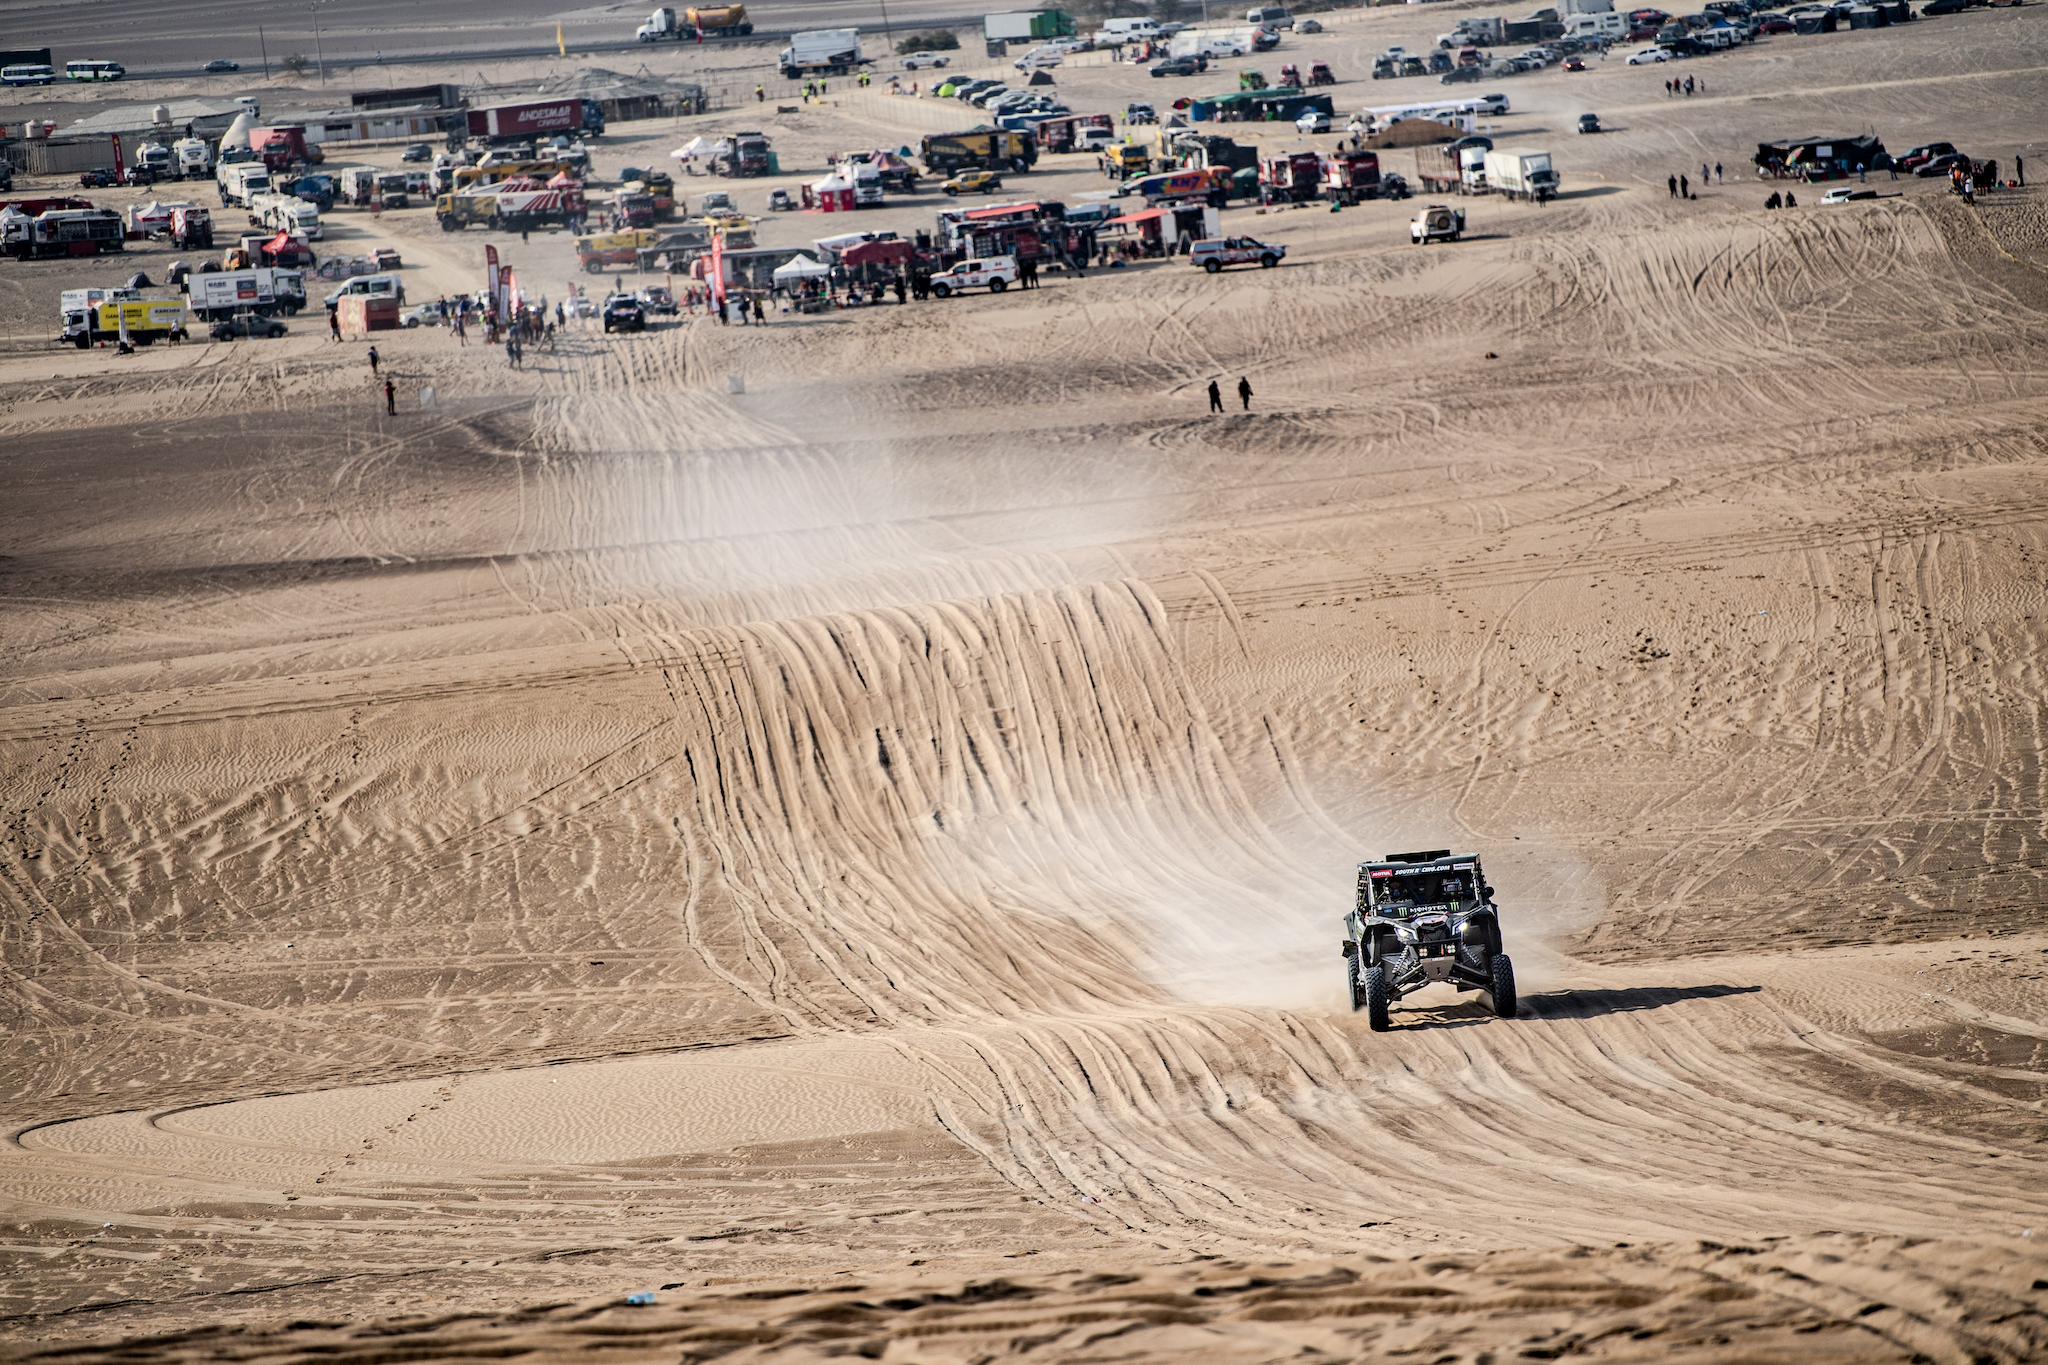 Casey takes off on the final stage of the Dakar rally.